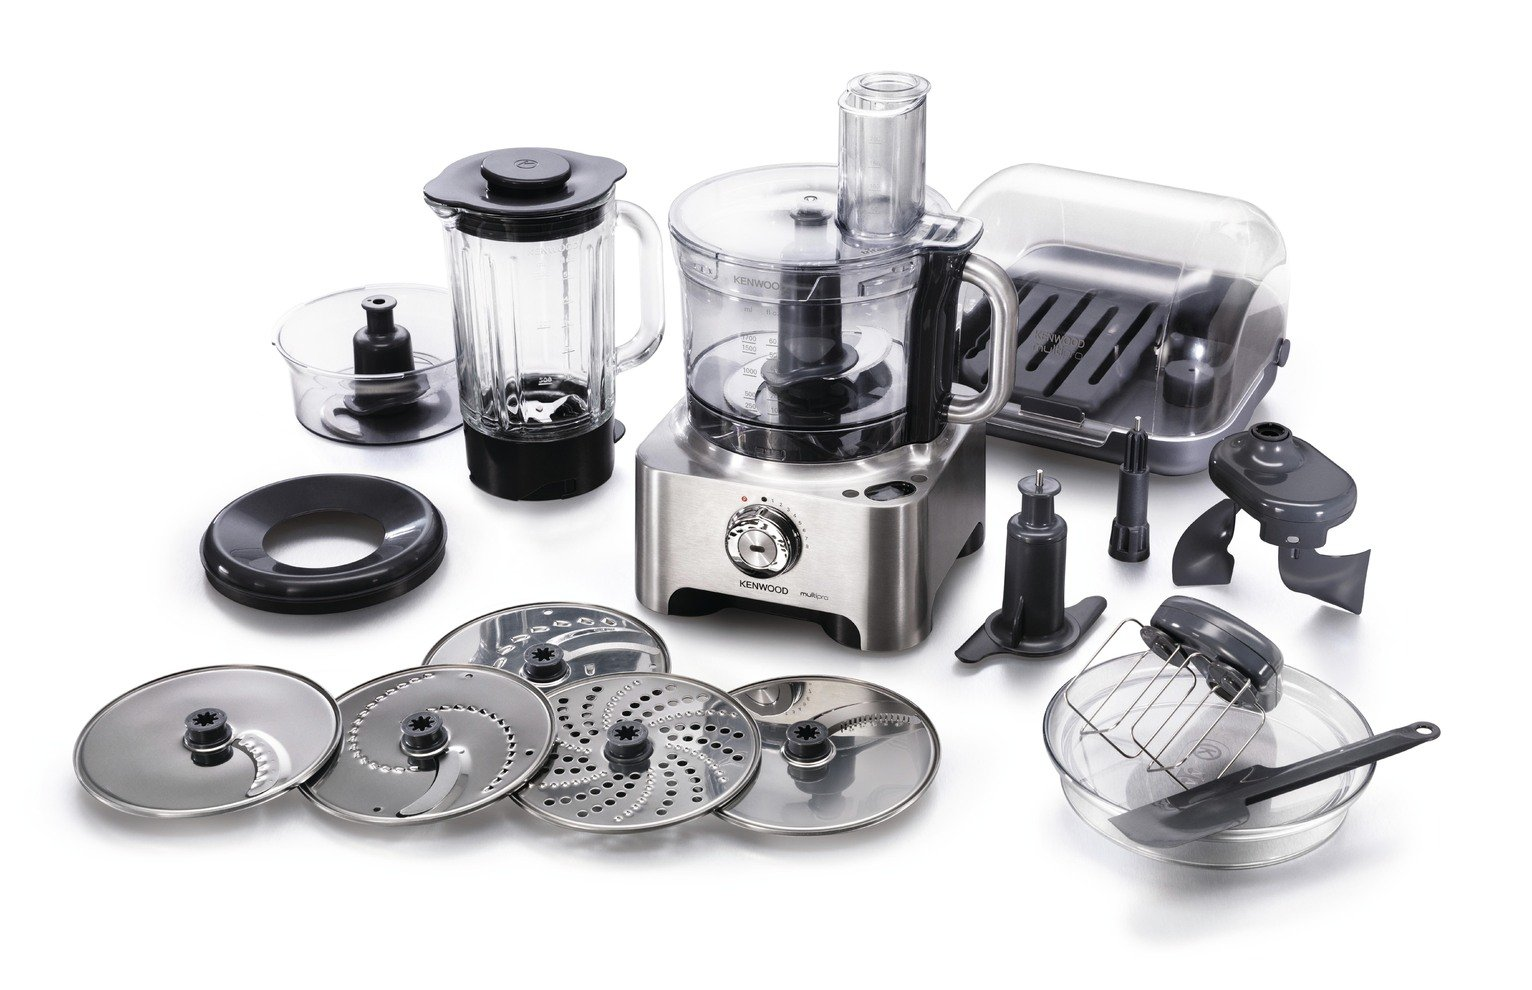 Kenwood FPM810 Food Processor - Stainless Steel